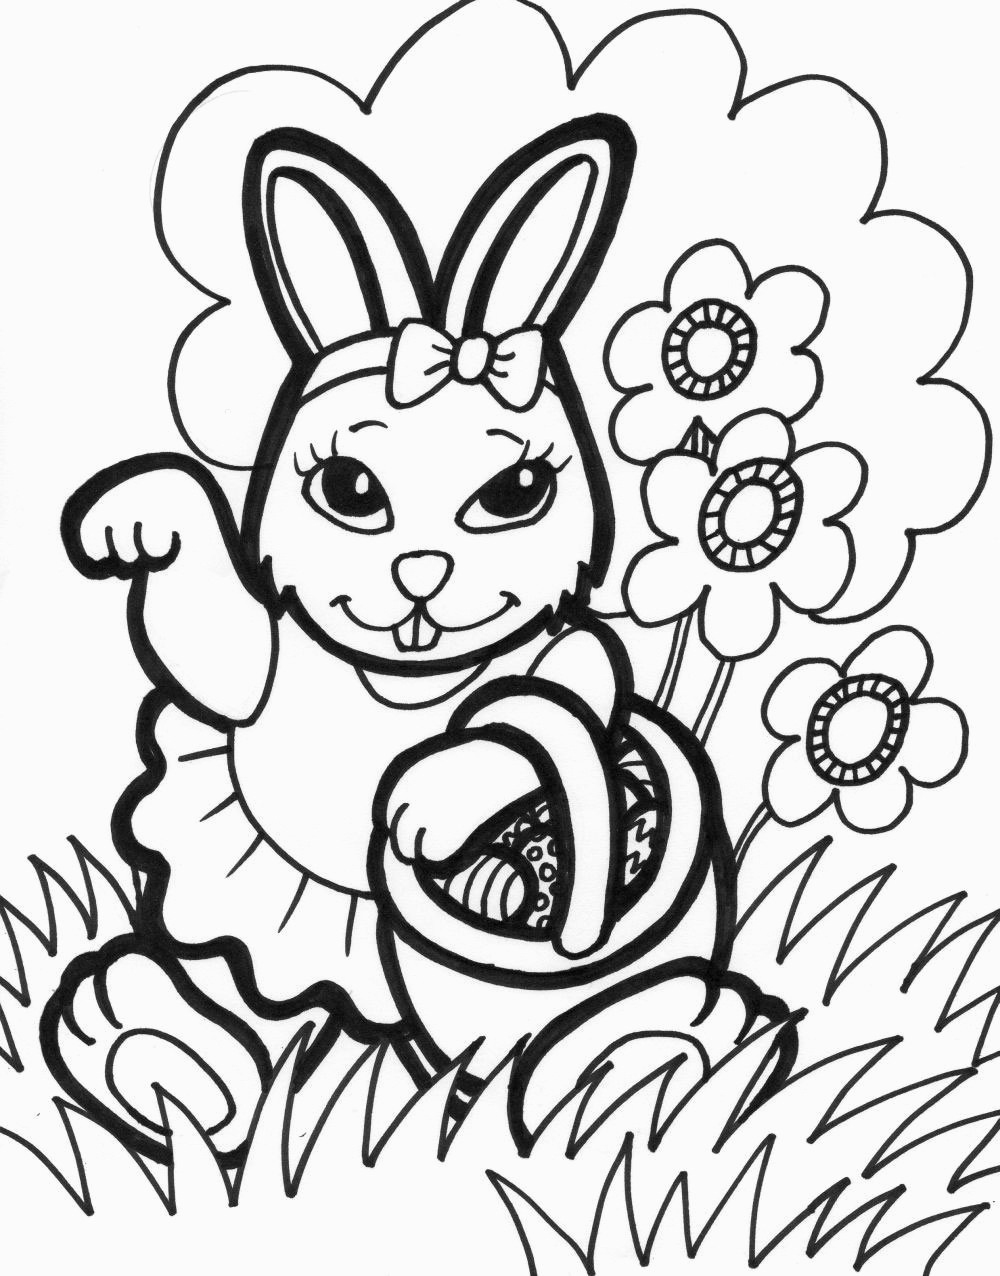 Printable Easter Coloring Pages | Printable Coloring Pages - Free Printable Easter Coloring Pages